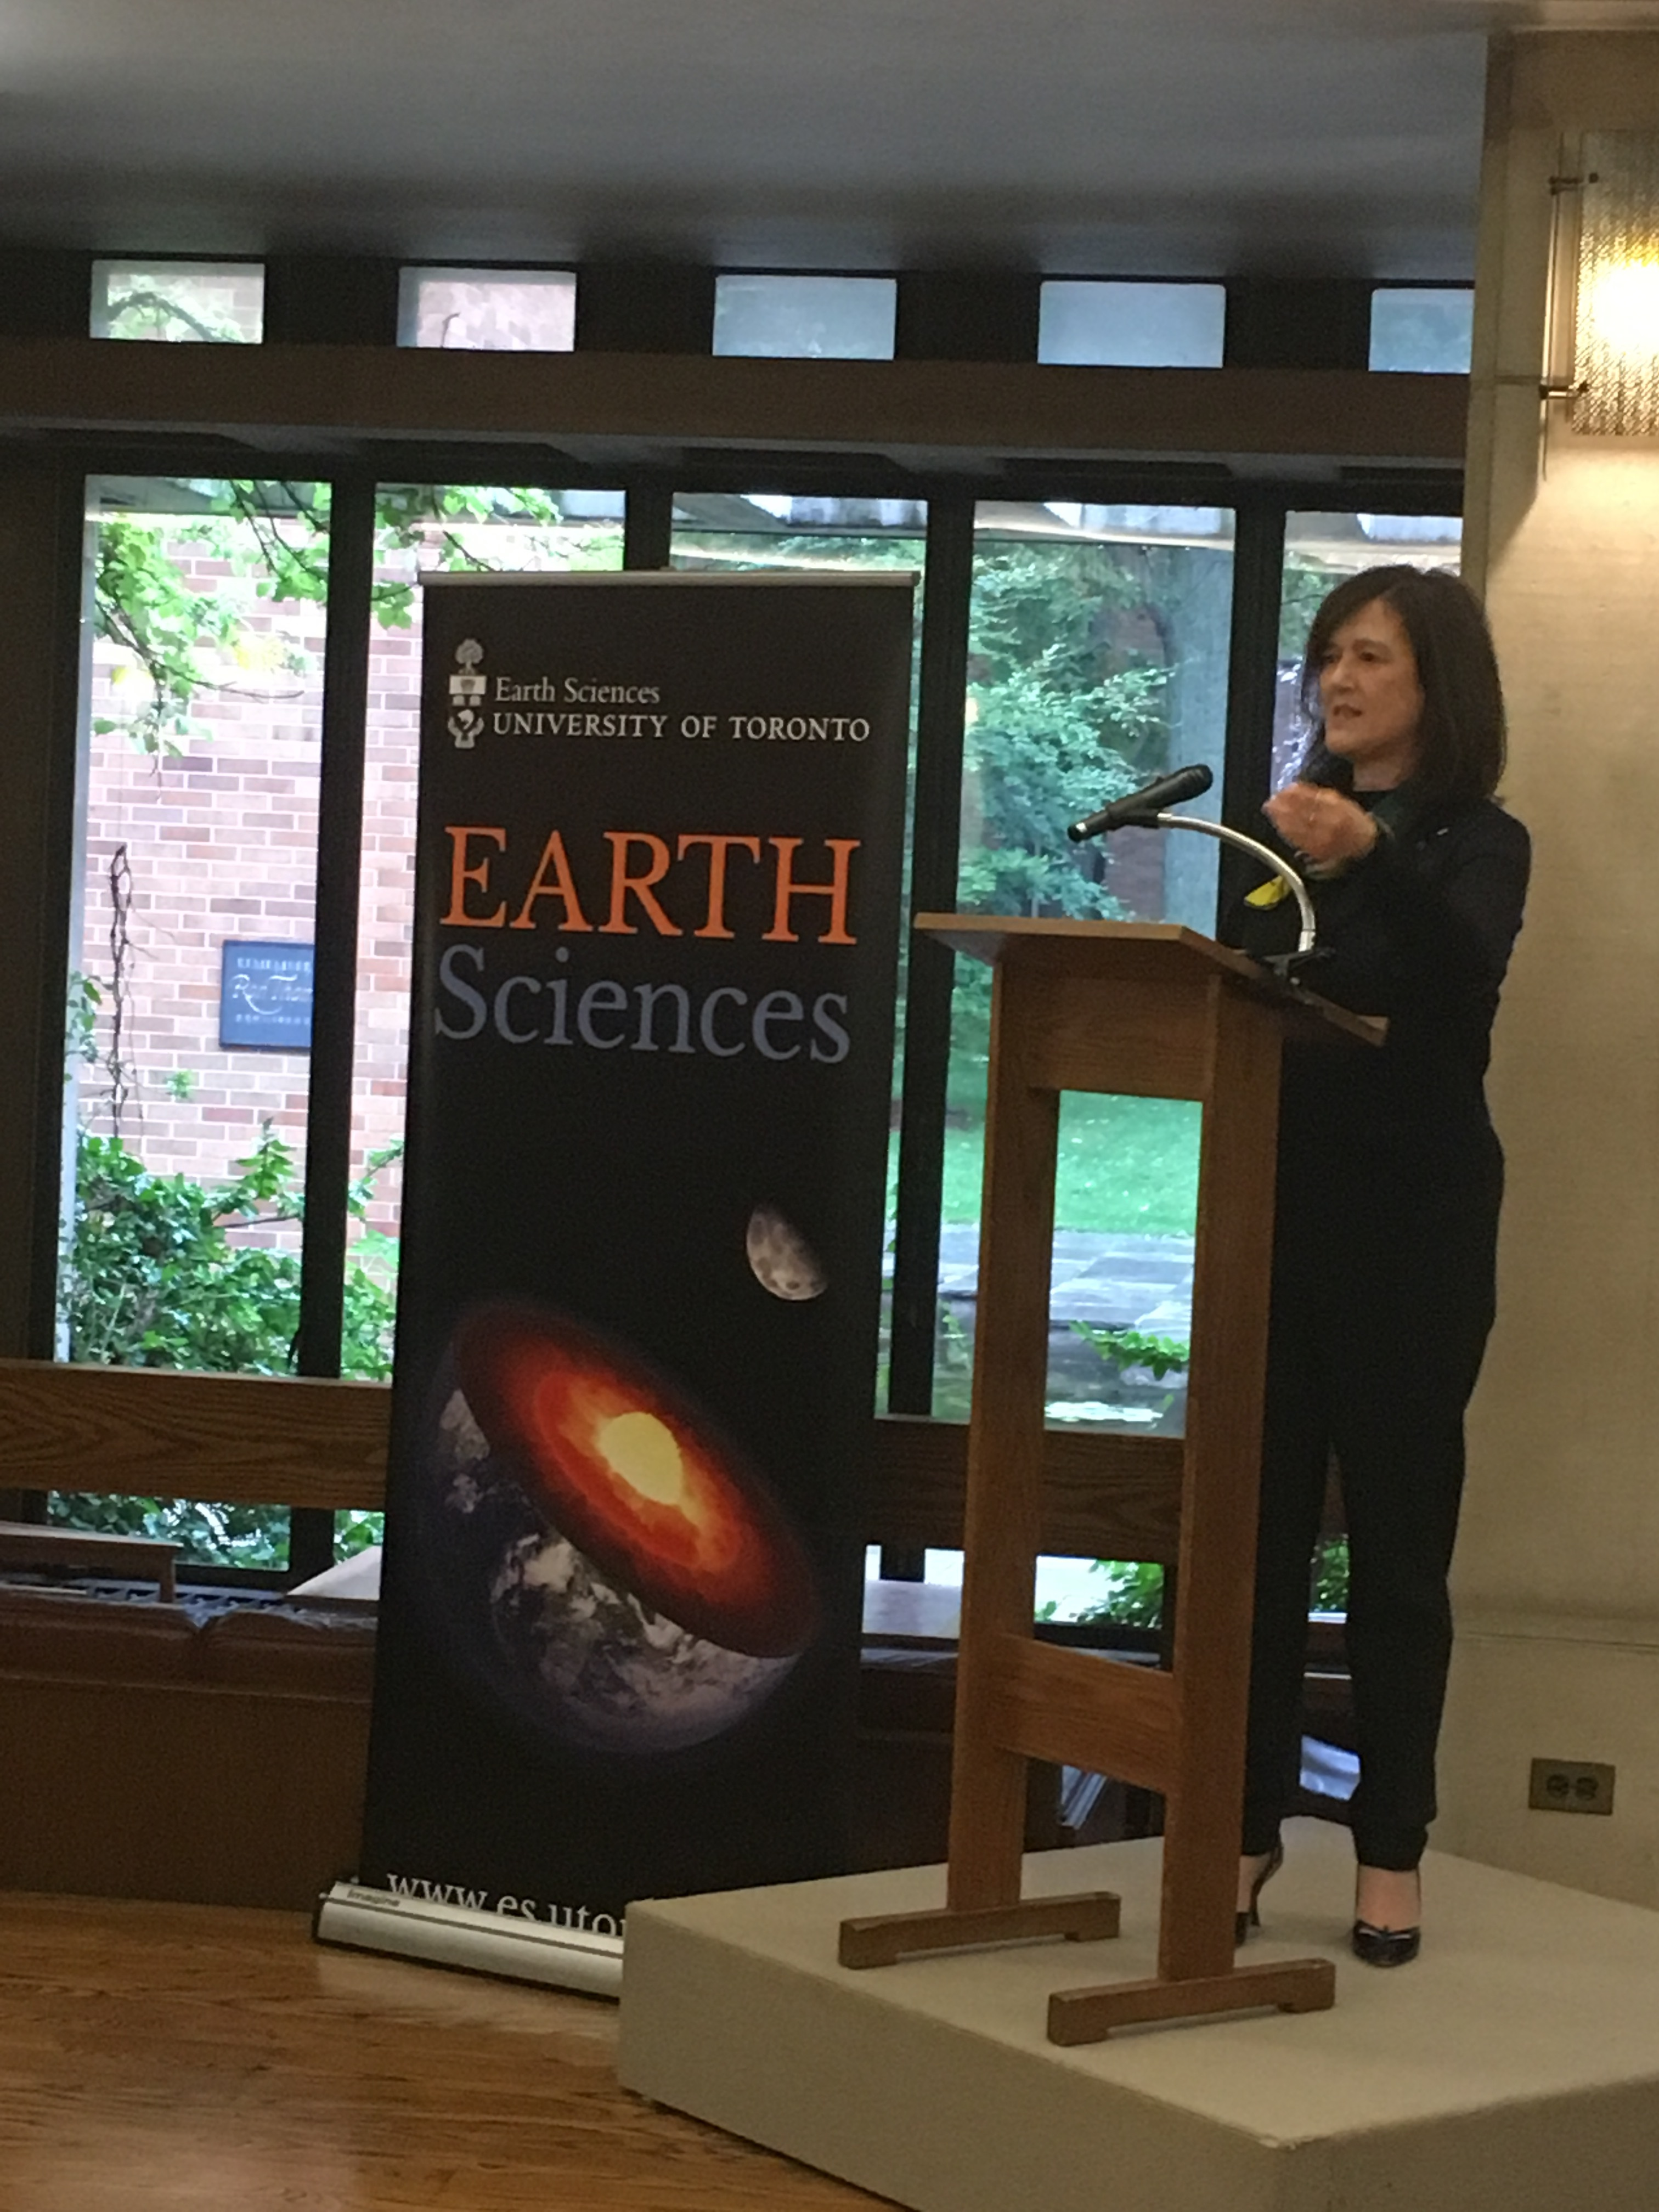 Dr. Barbara Sherwood Lollar received the 2019 Gerhard Herzberg Canada Gold Medal for Science and Engineering. University of Toronto recently hosted a special reception to honour her achievement.